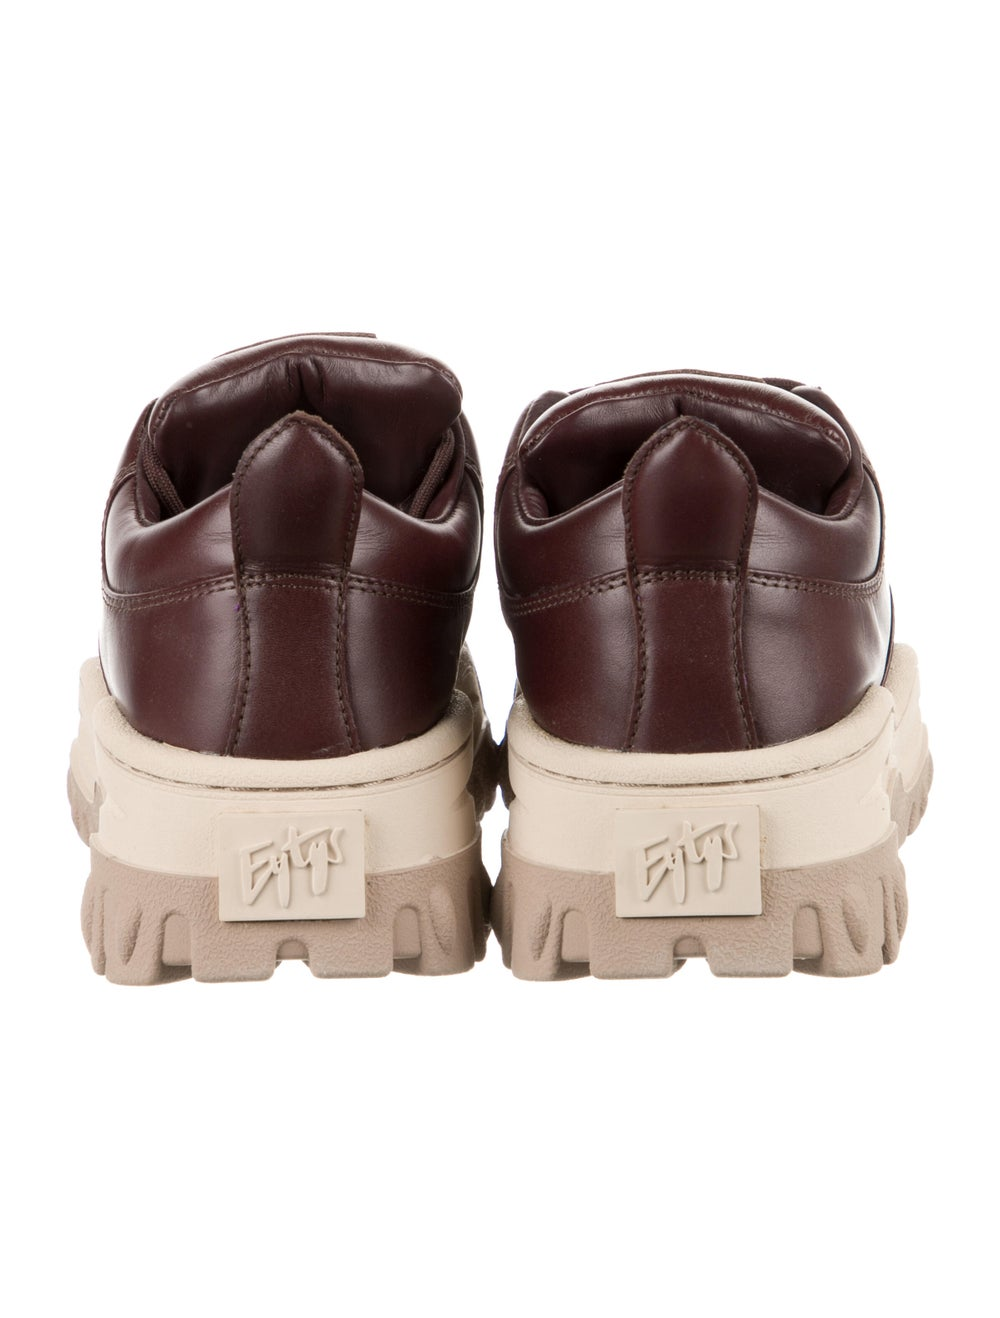 Eytys Leather Chunky Sneakers Brown - image 4